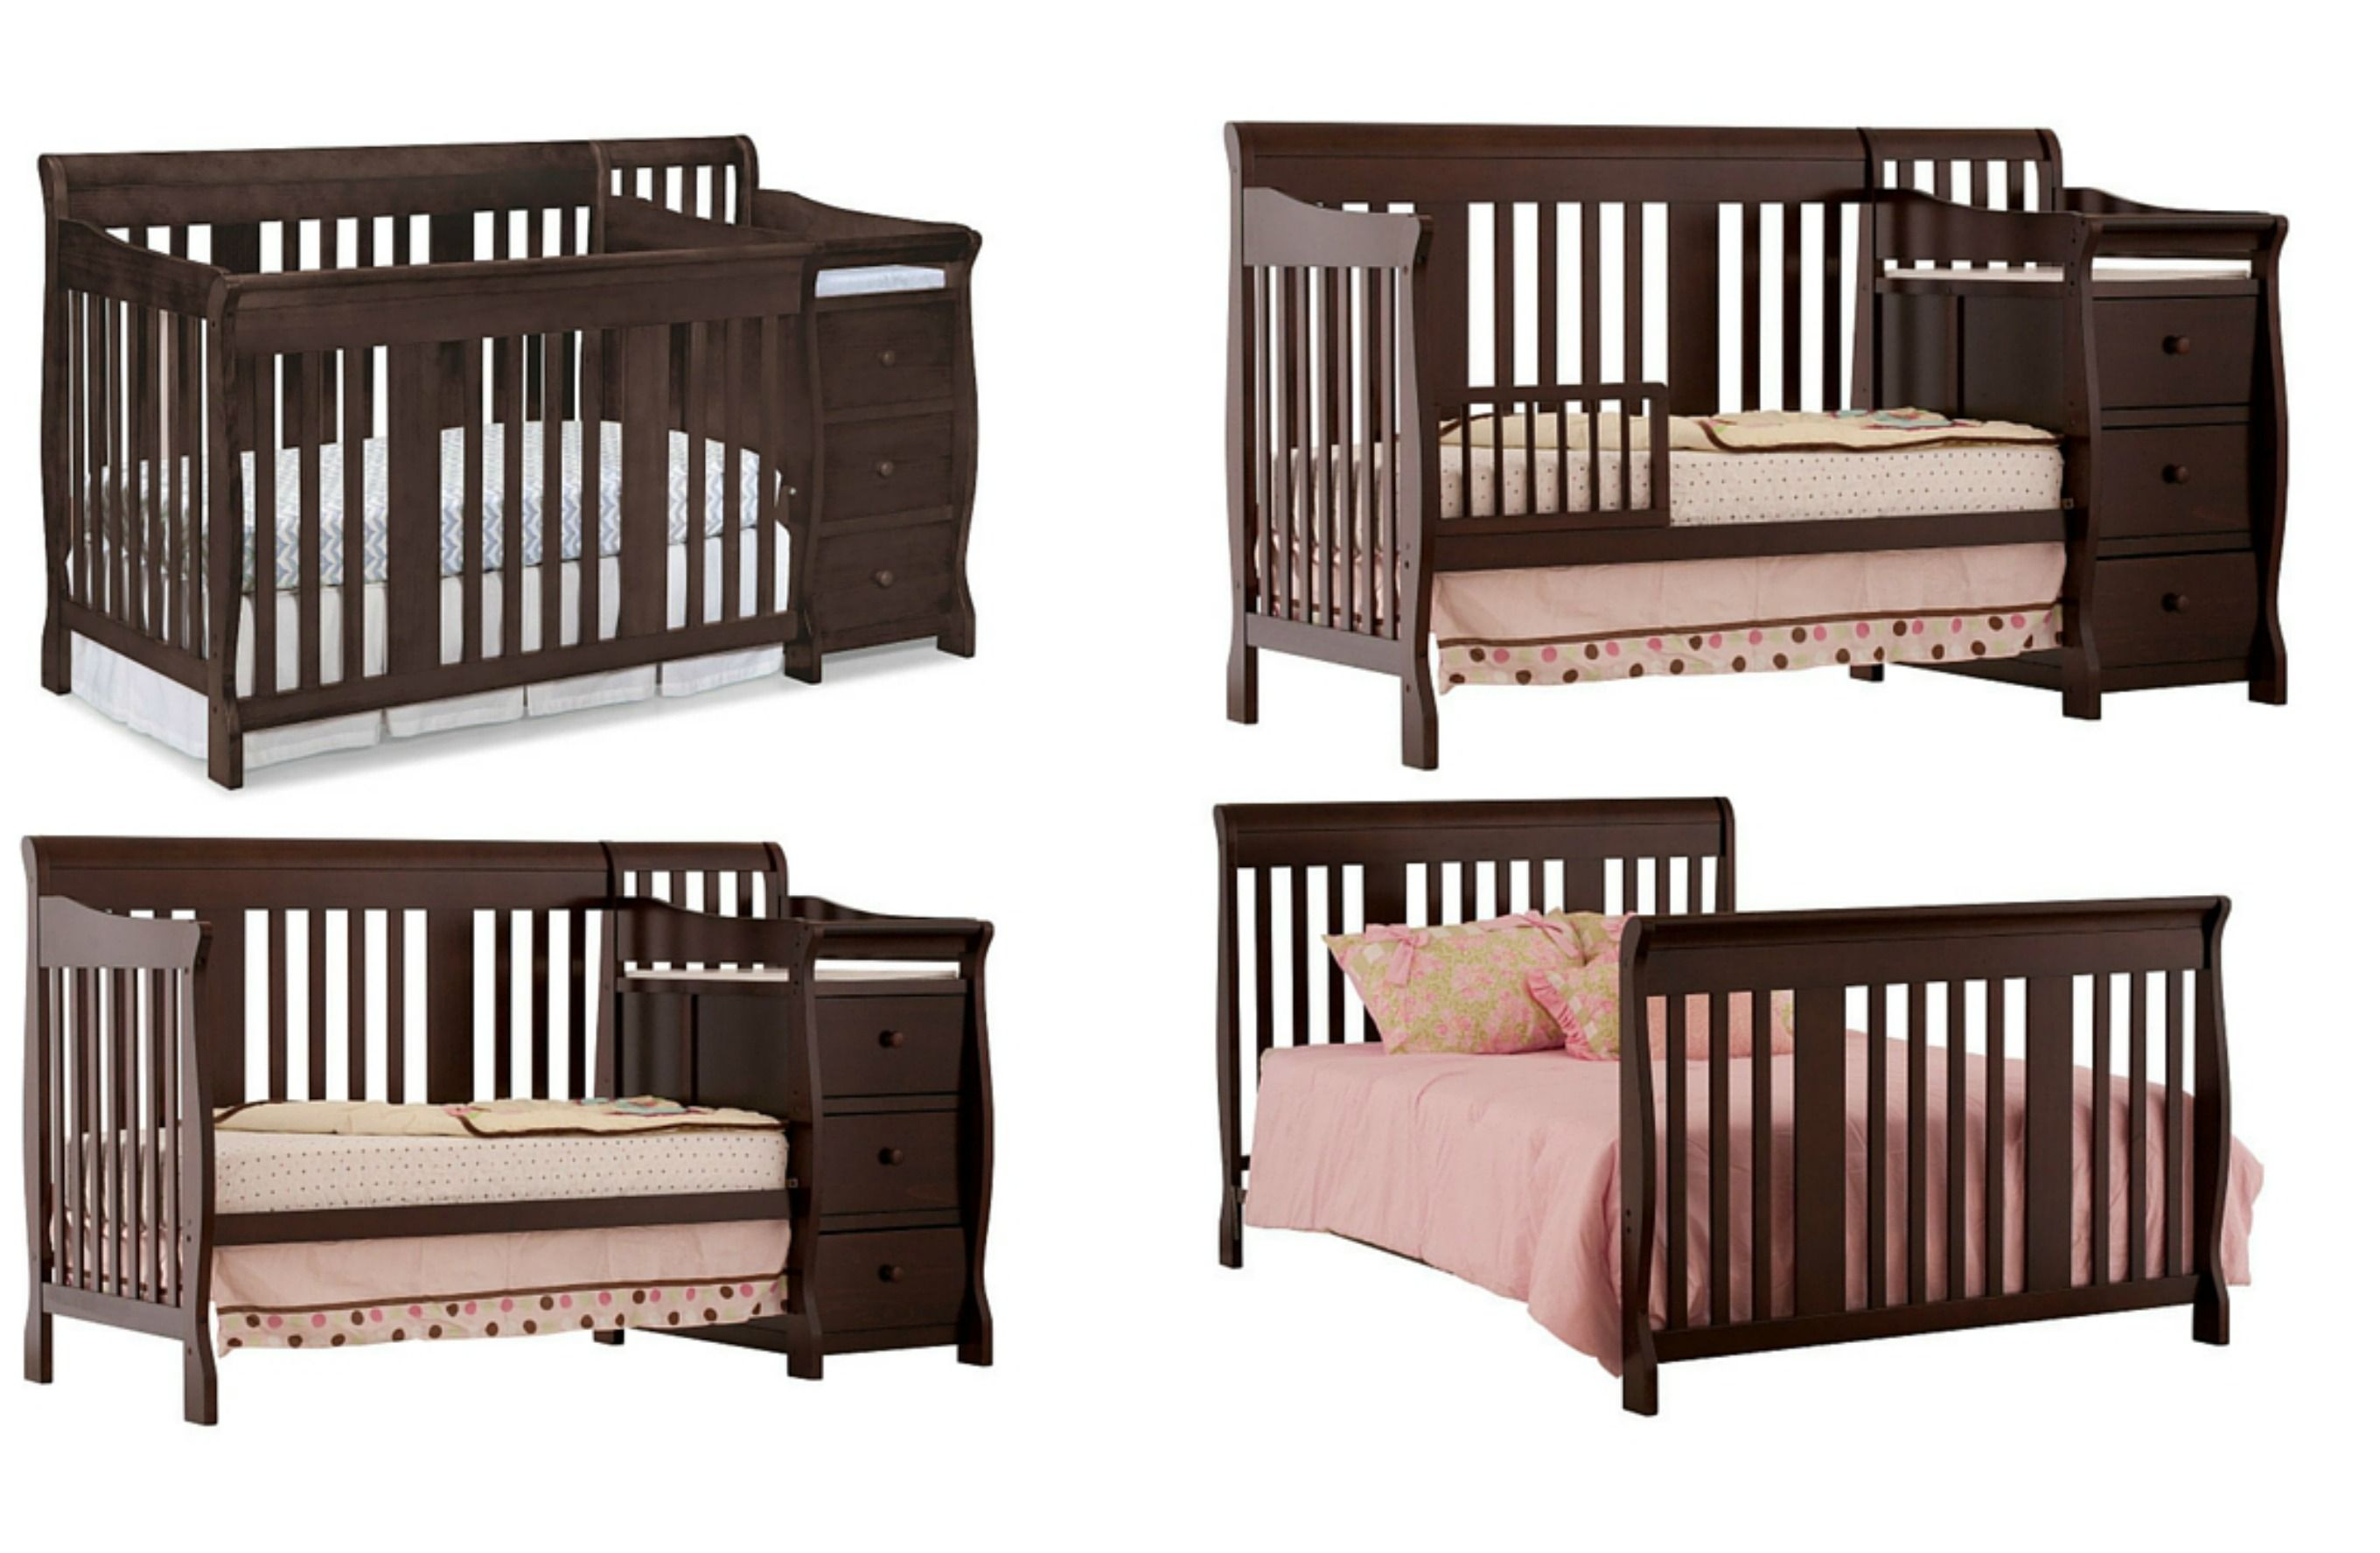 crib london toddler for rail bed luxury guard cribs delta select child craft of cherry parisian rails lovely convertible